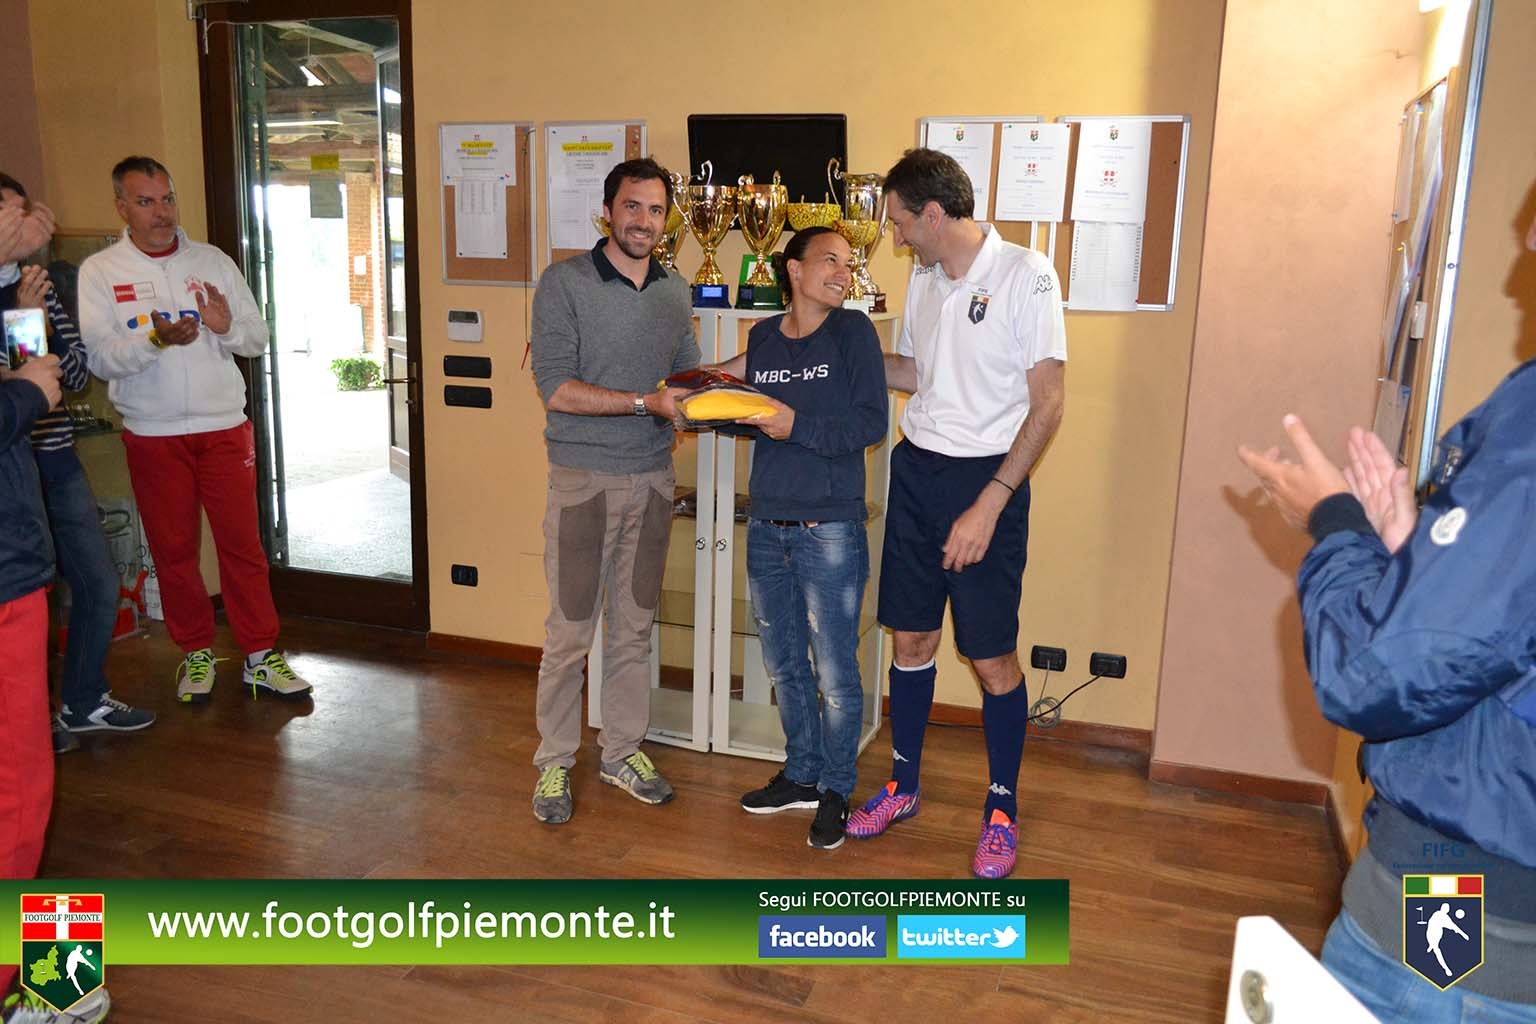 FOTO 9 Regions' Cup Footgolf Piemonte 2016 Golf Città di Asti (At) 30apr16-107